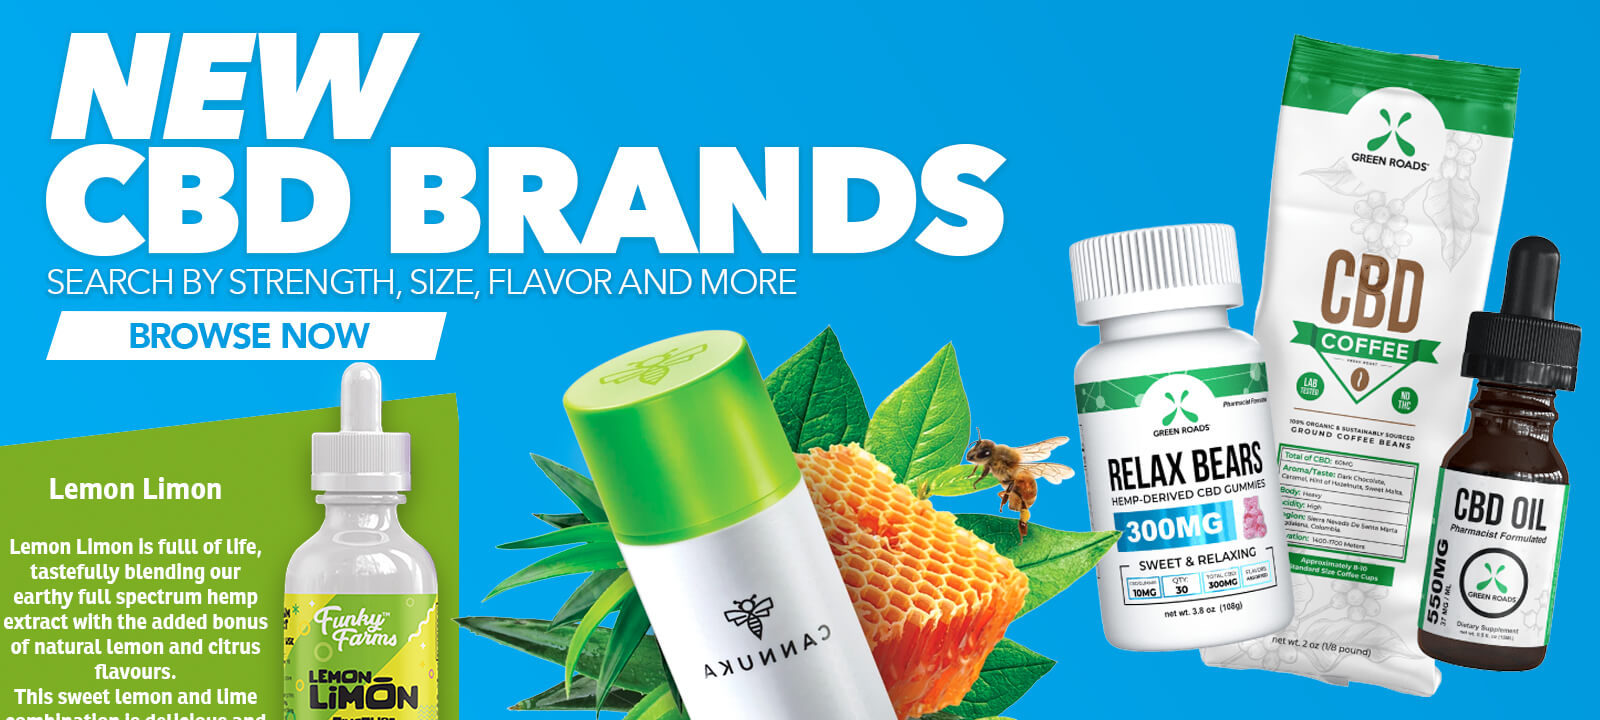 New CBD Brands now available